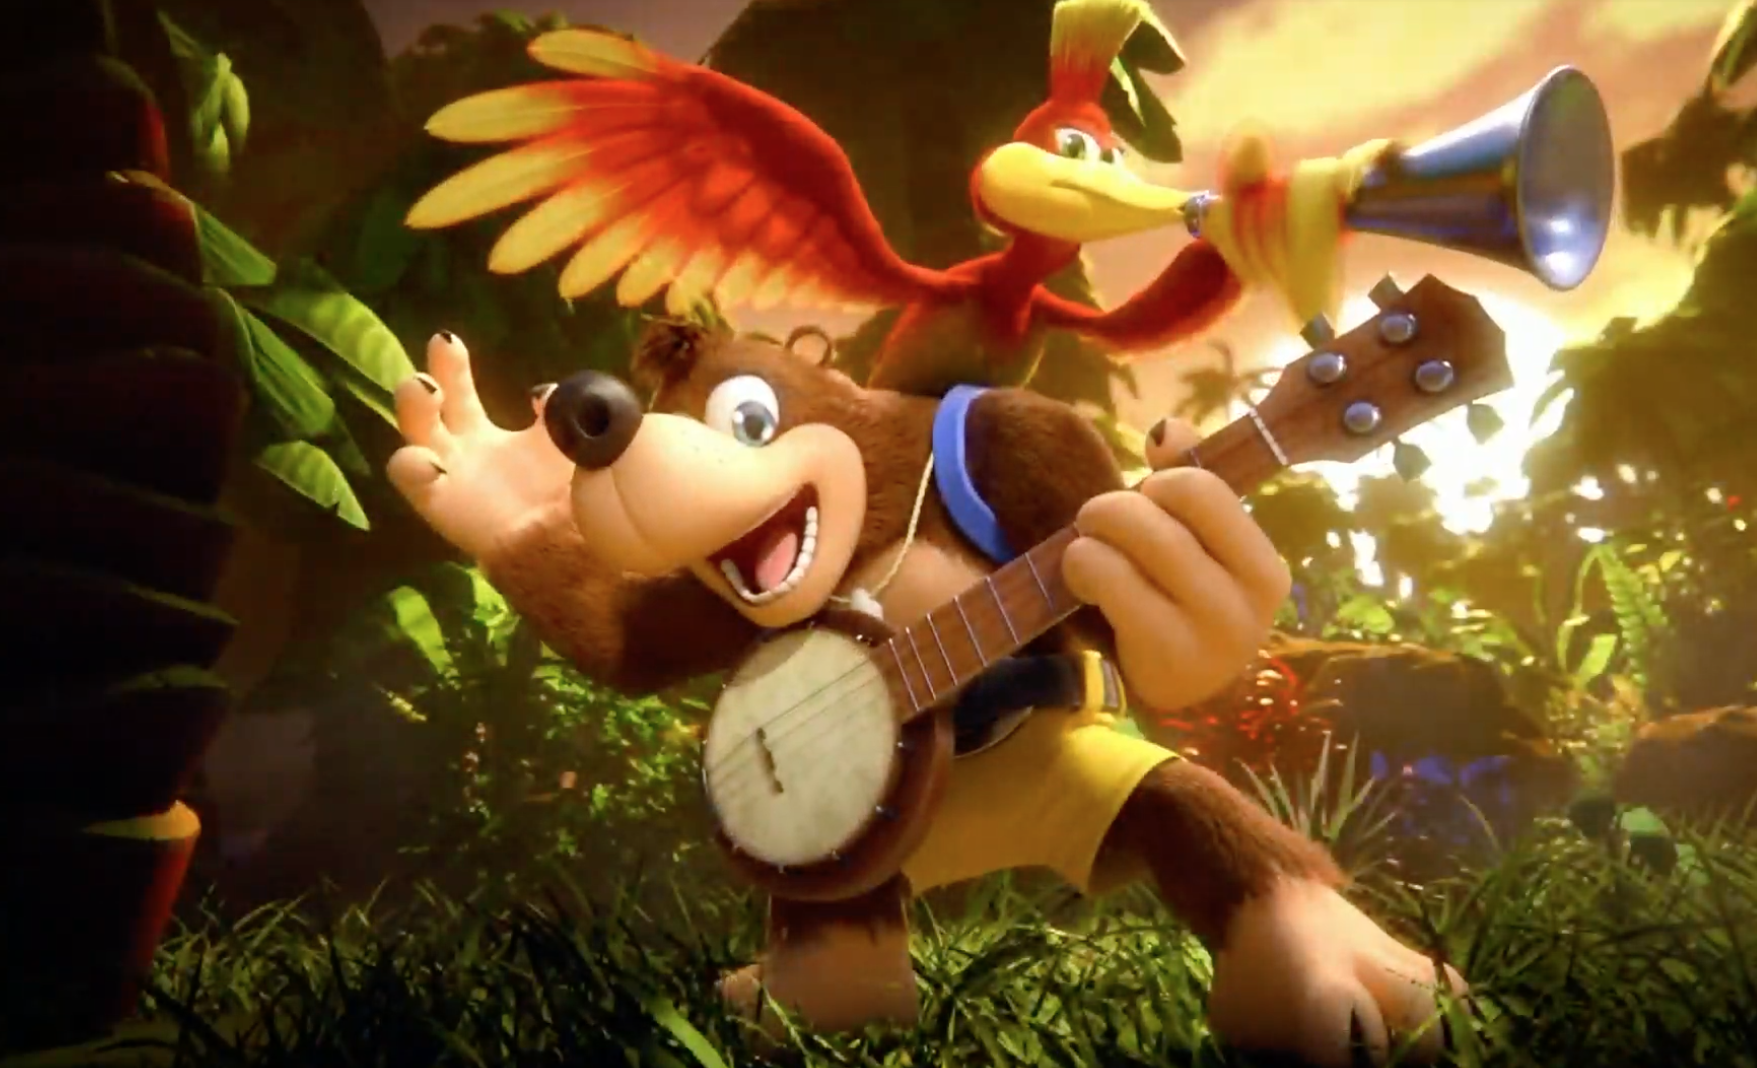 Breath of the Wild 2, Banjo-Kazooie and The Witcher 3 headline